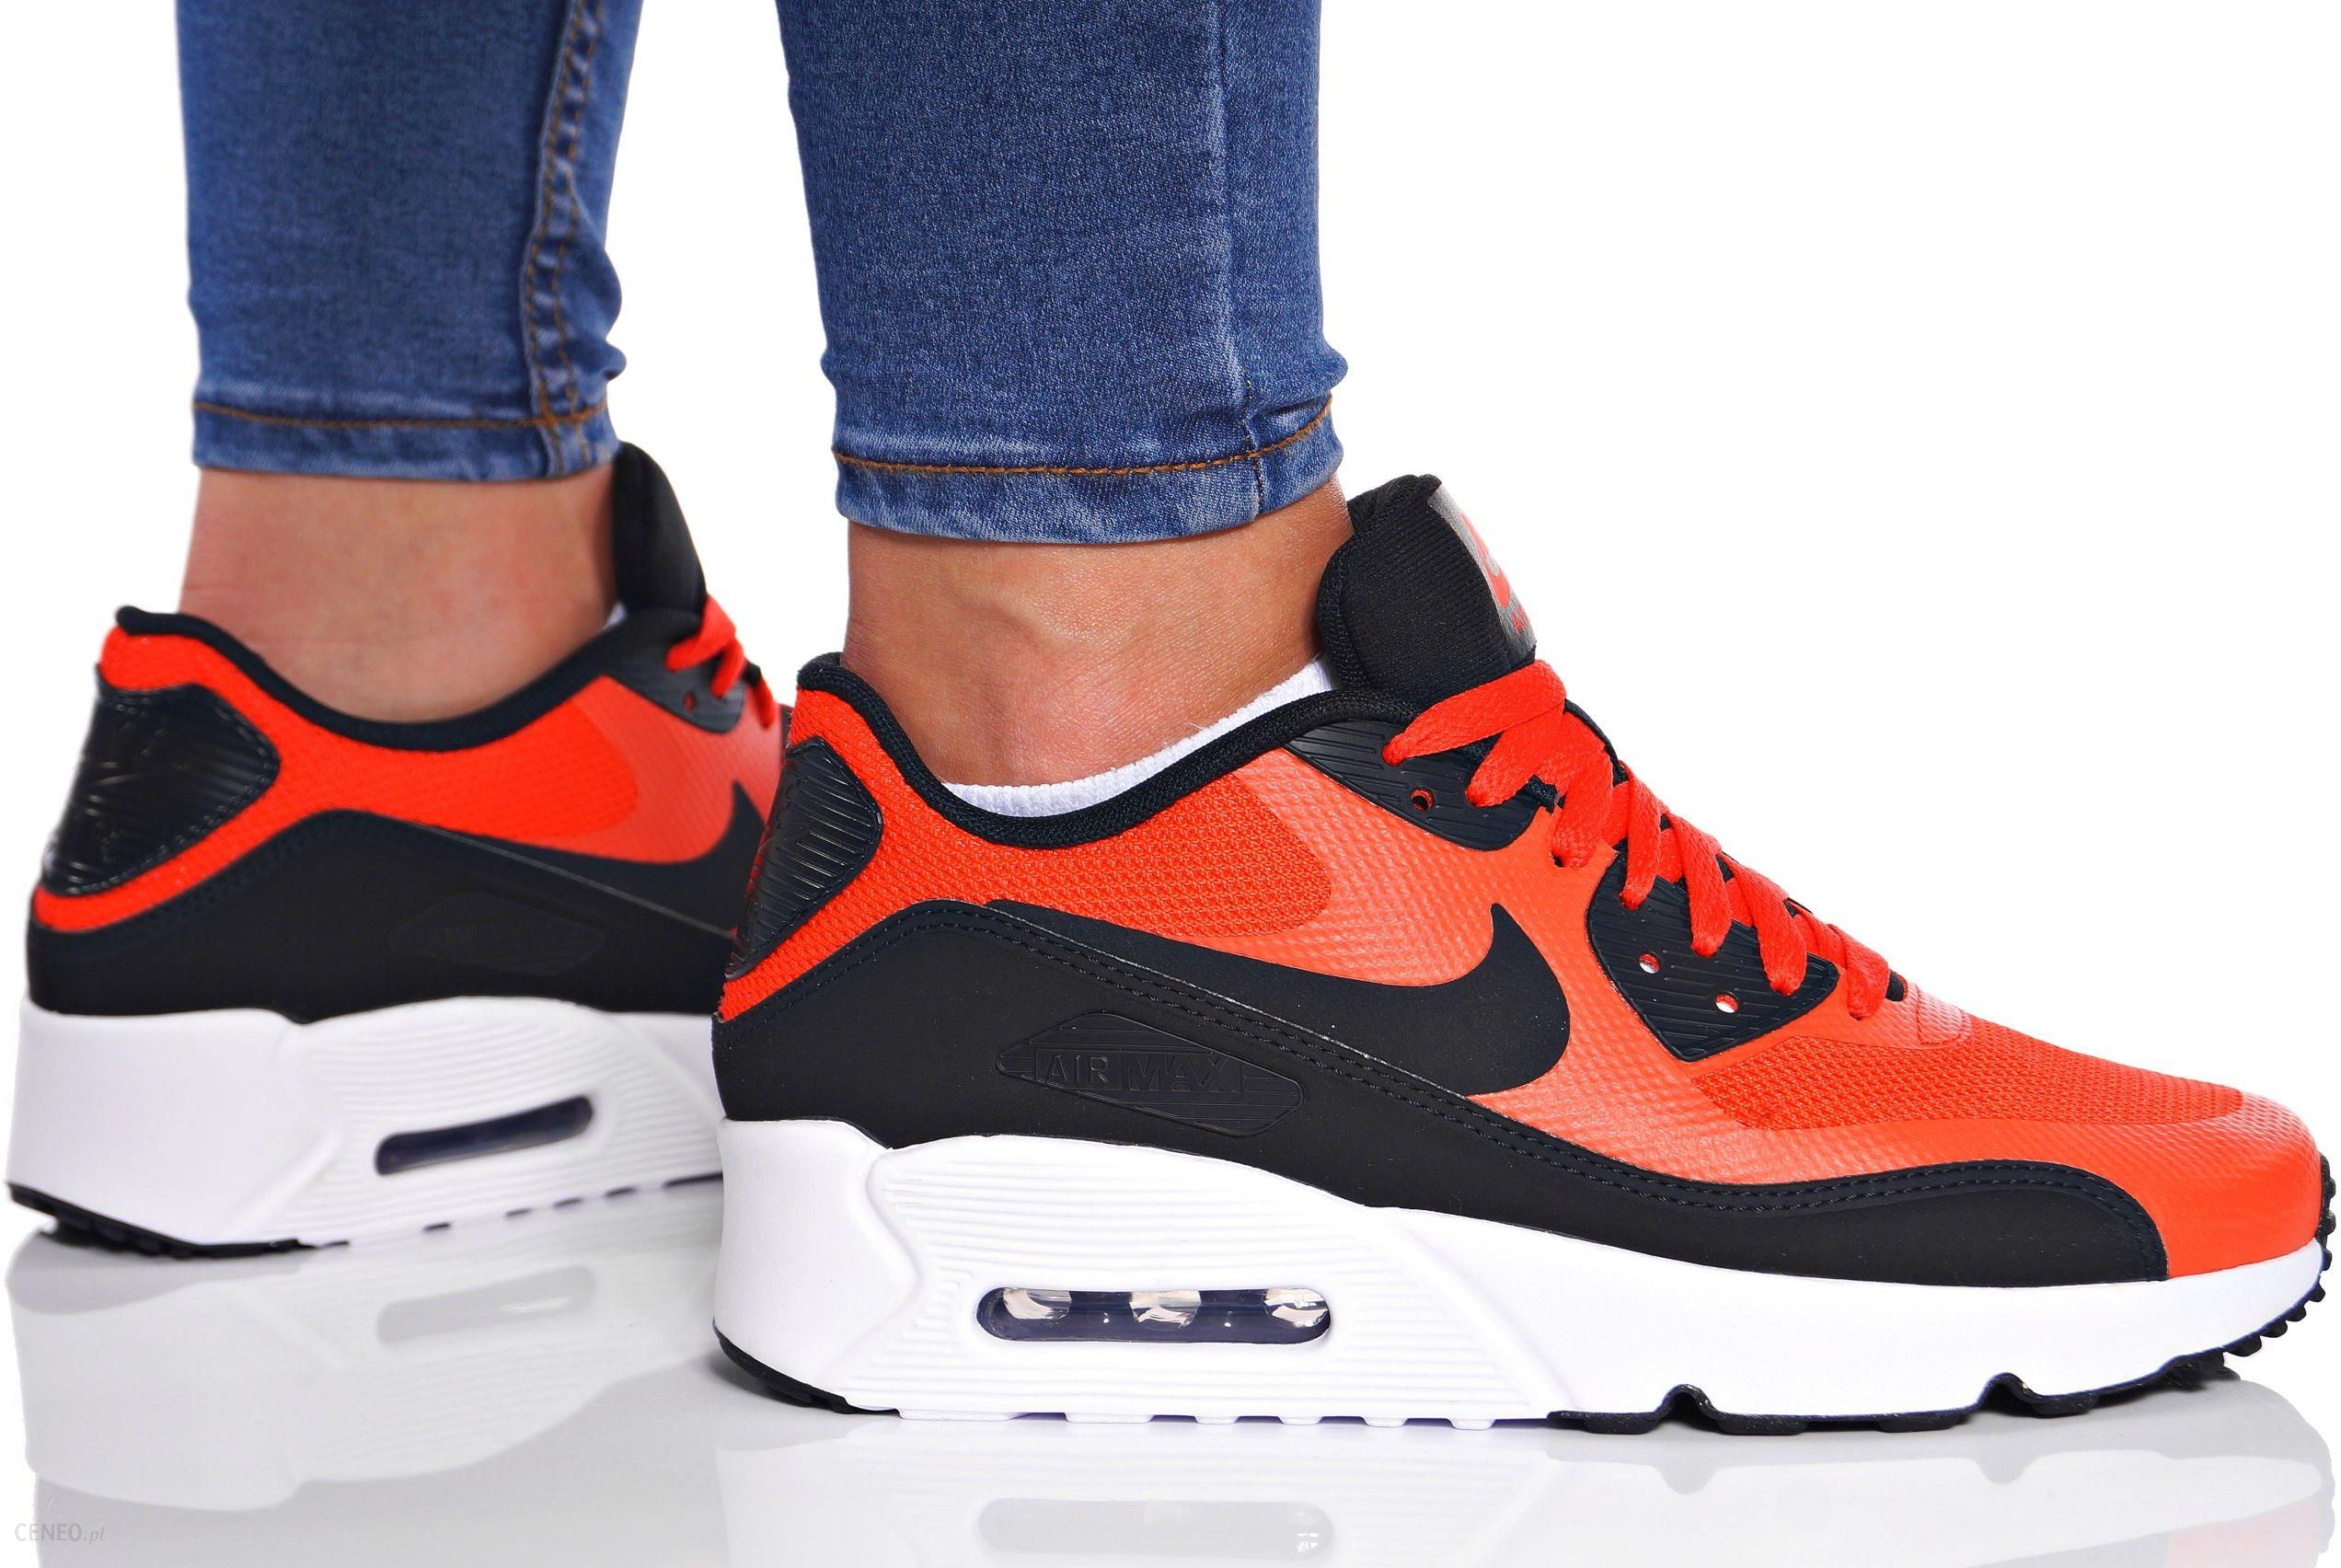 Buty Nike Air Max 90 Ultra 2.0 Gs 869950 800 Ceny i opinie Ceneo.pl